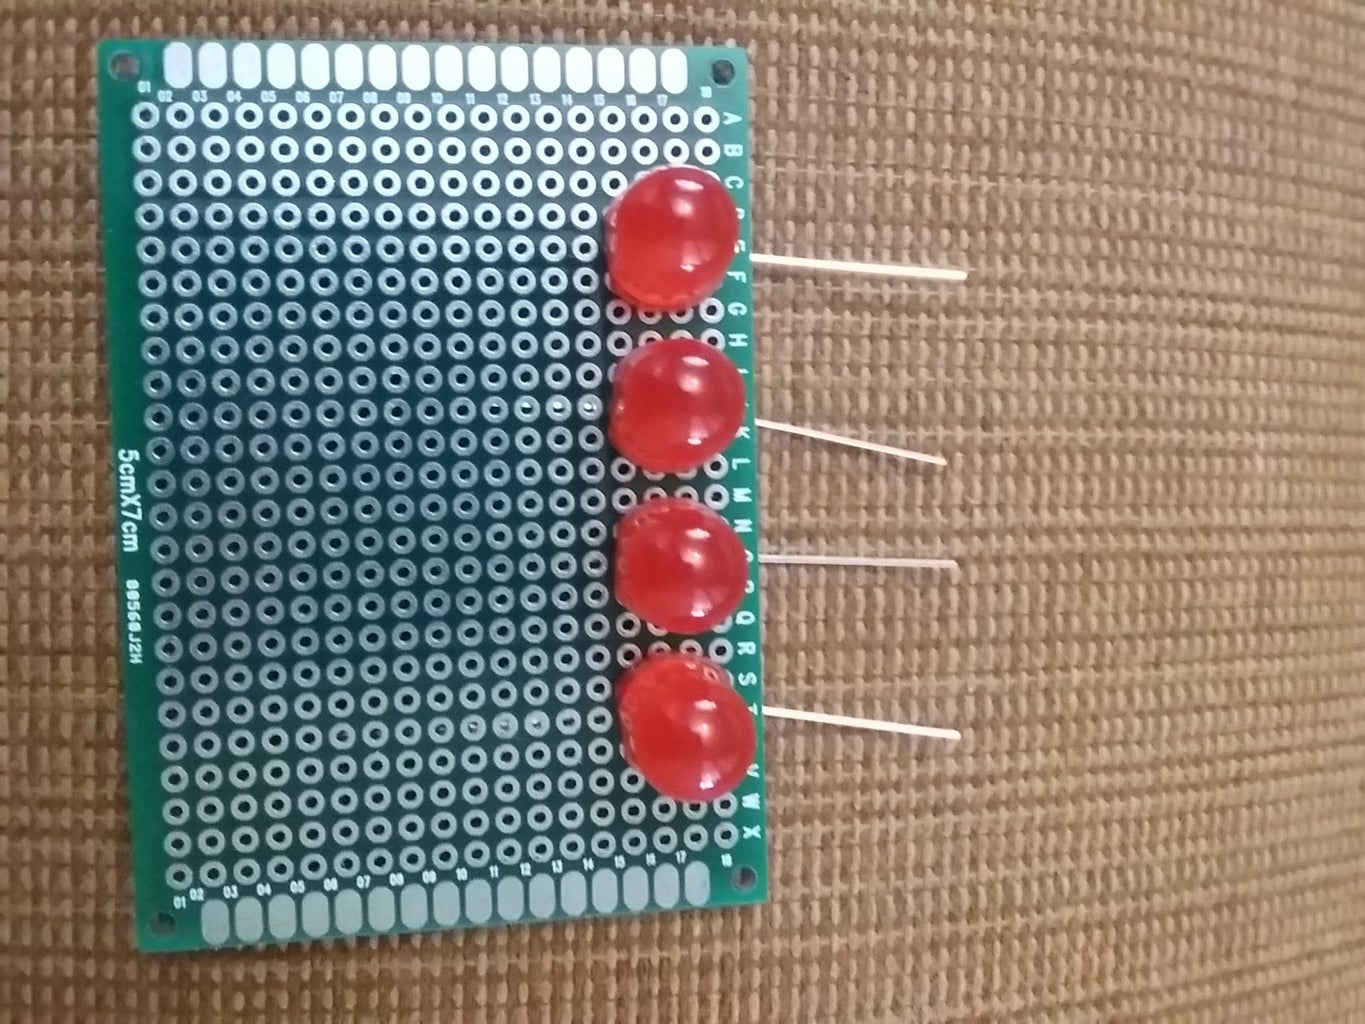 Inserting the LEDs